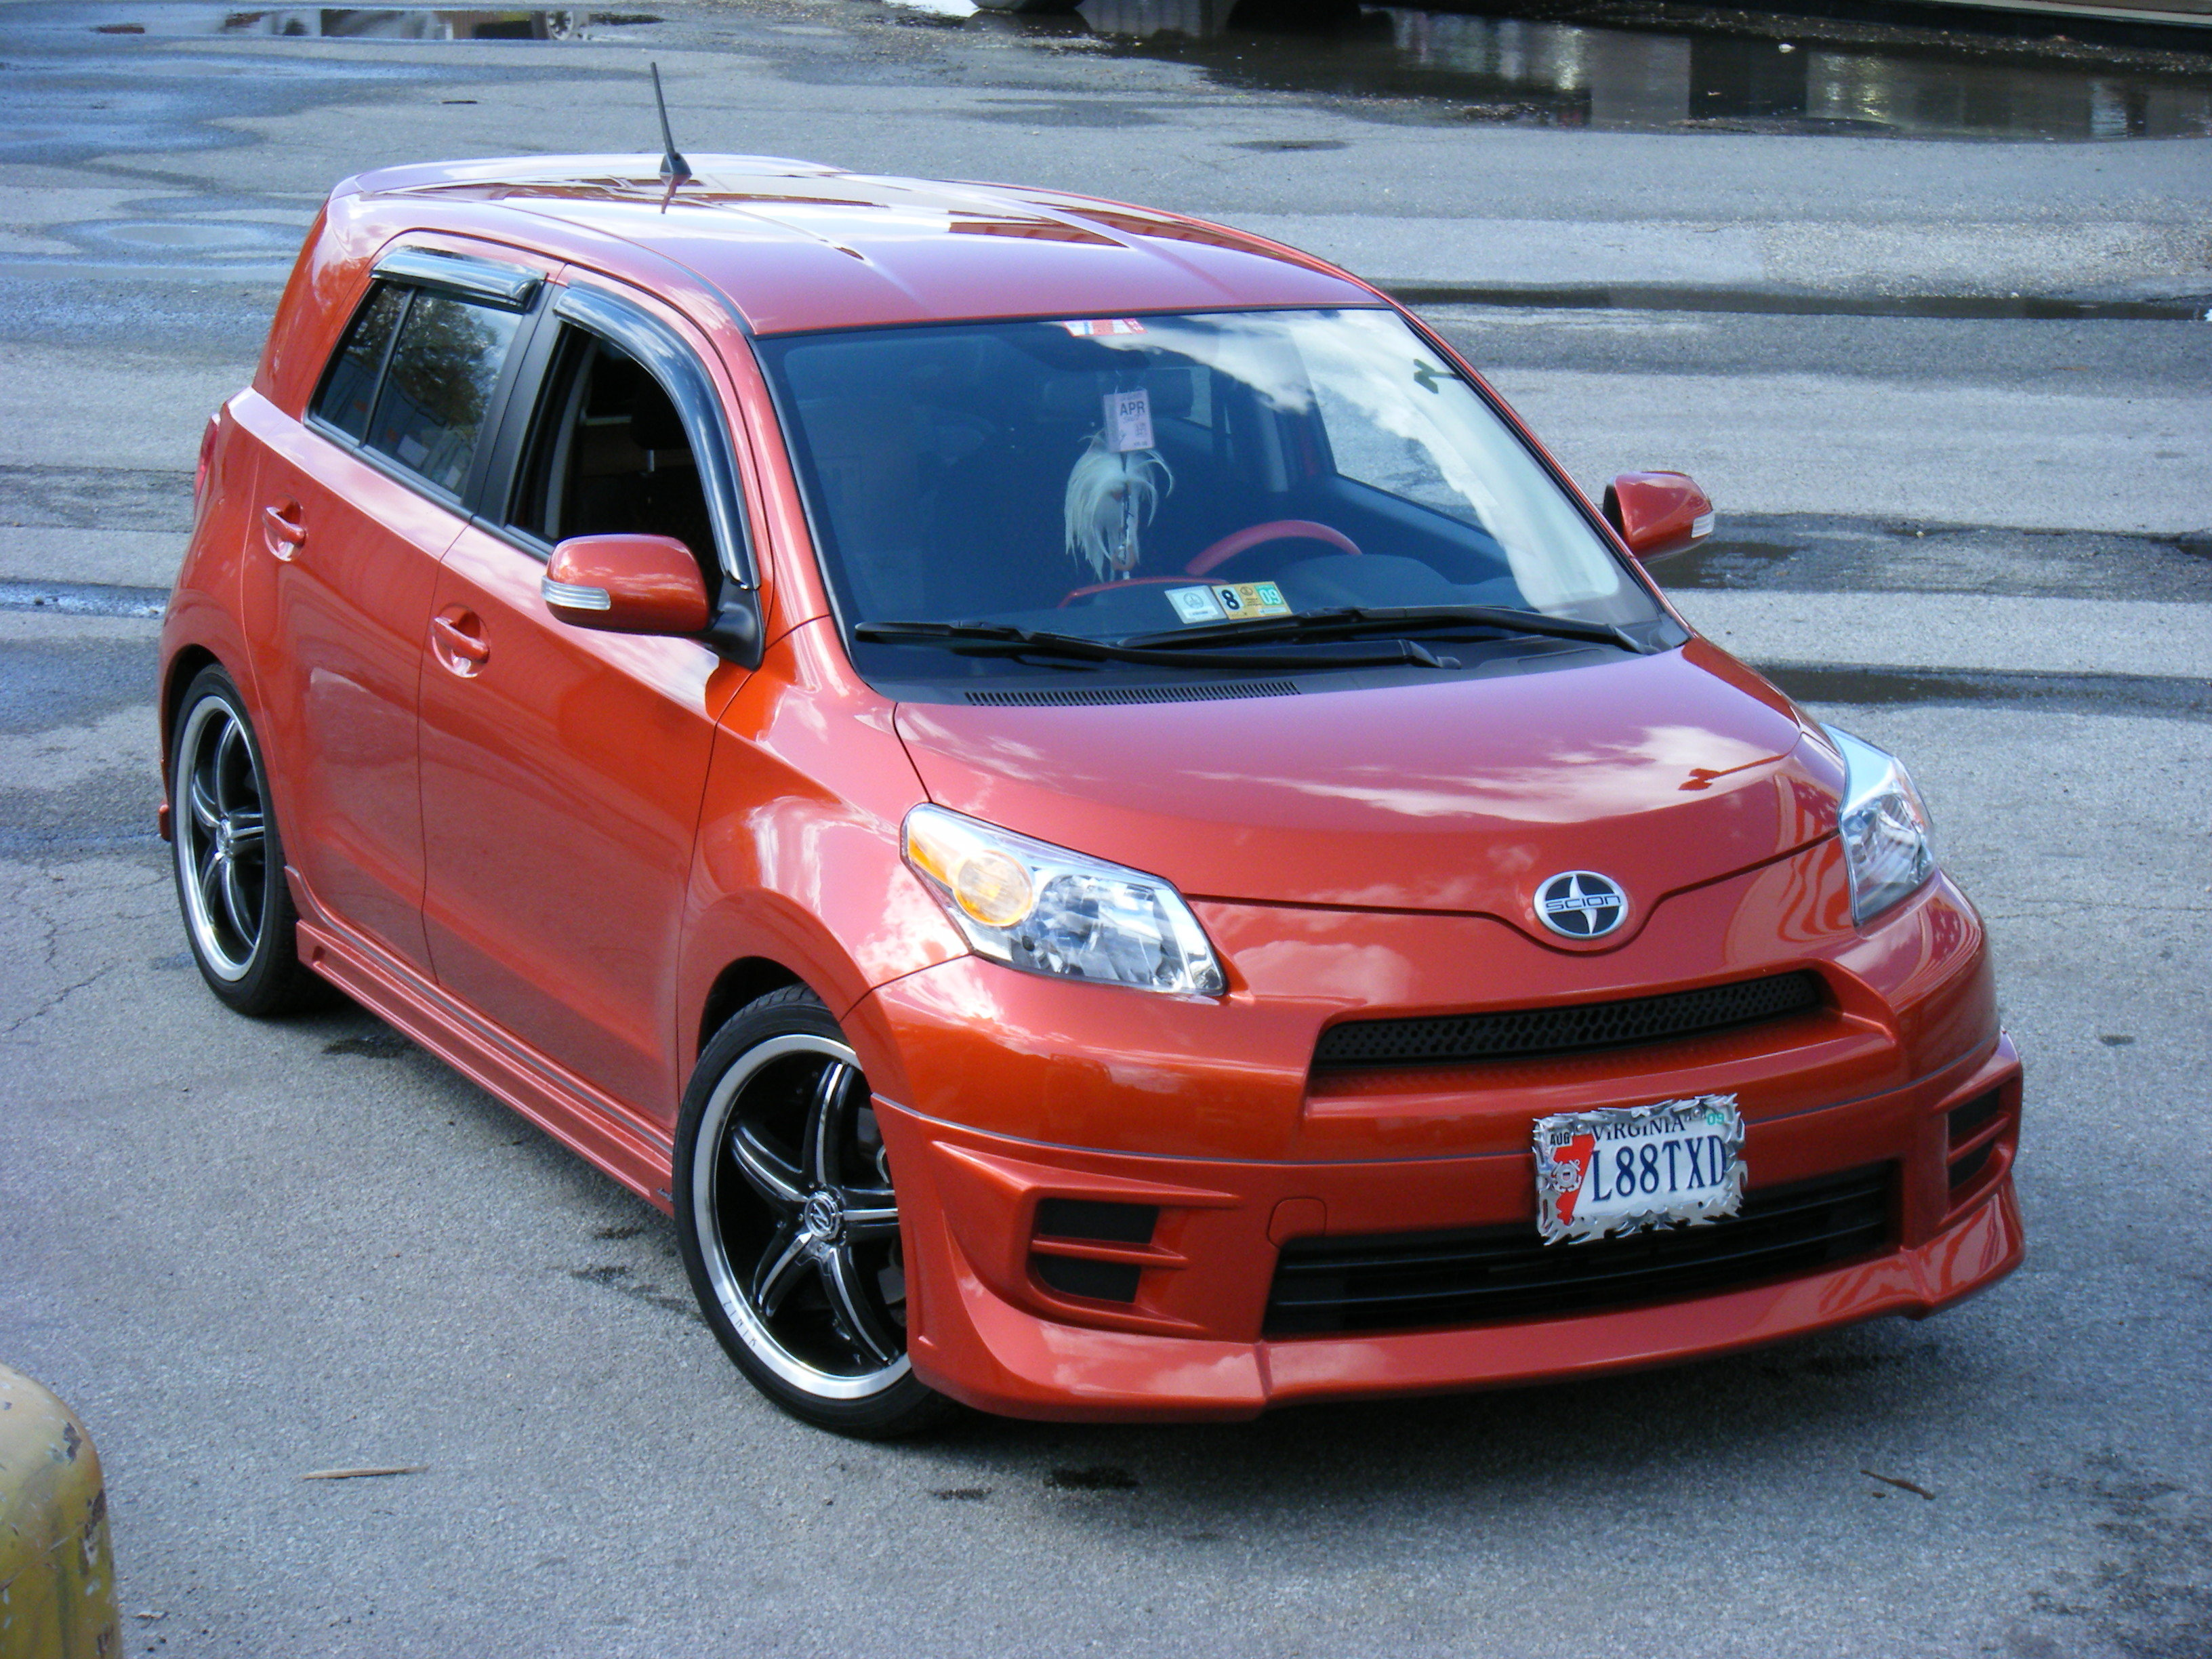 th0rr30's 2008 Scion xD